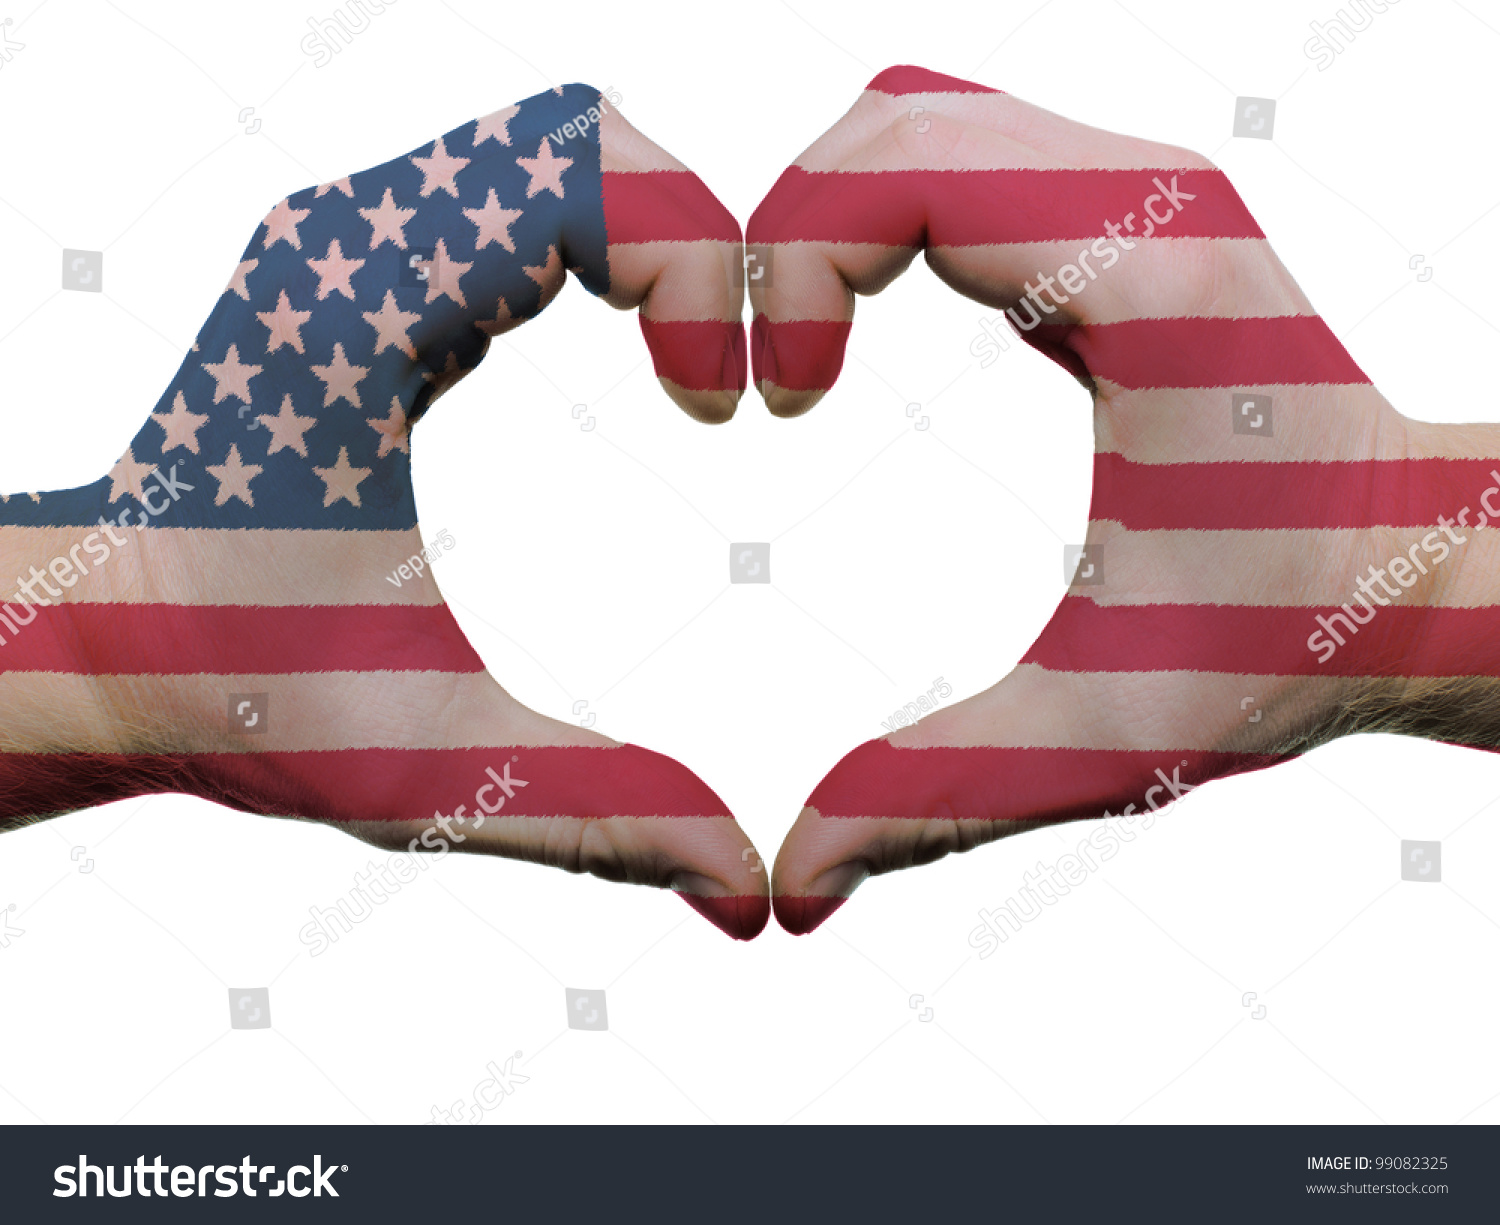 Image result for american flag LOVE